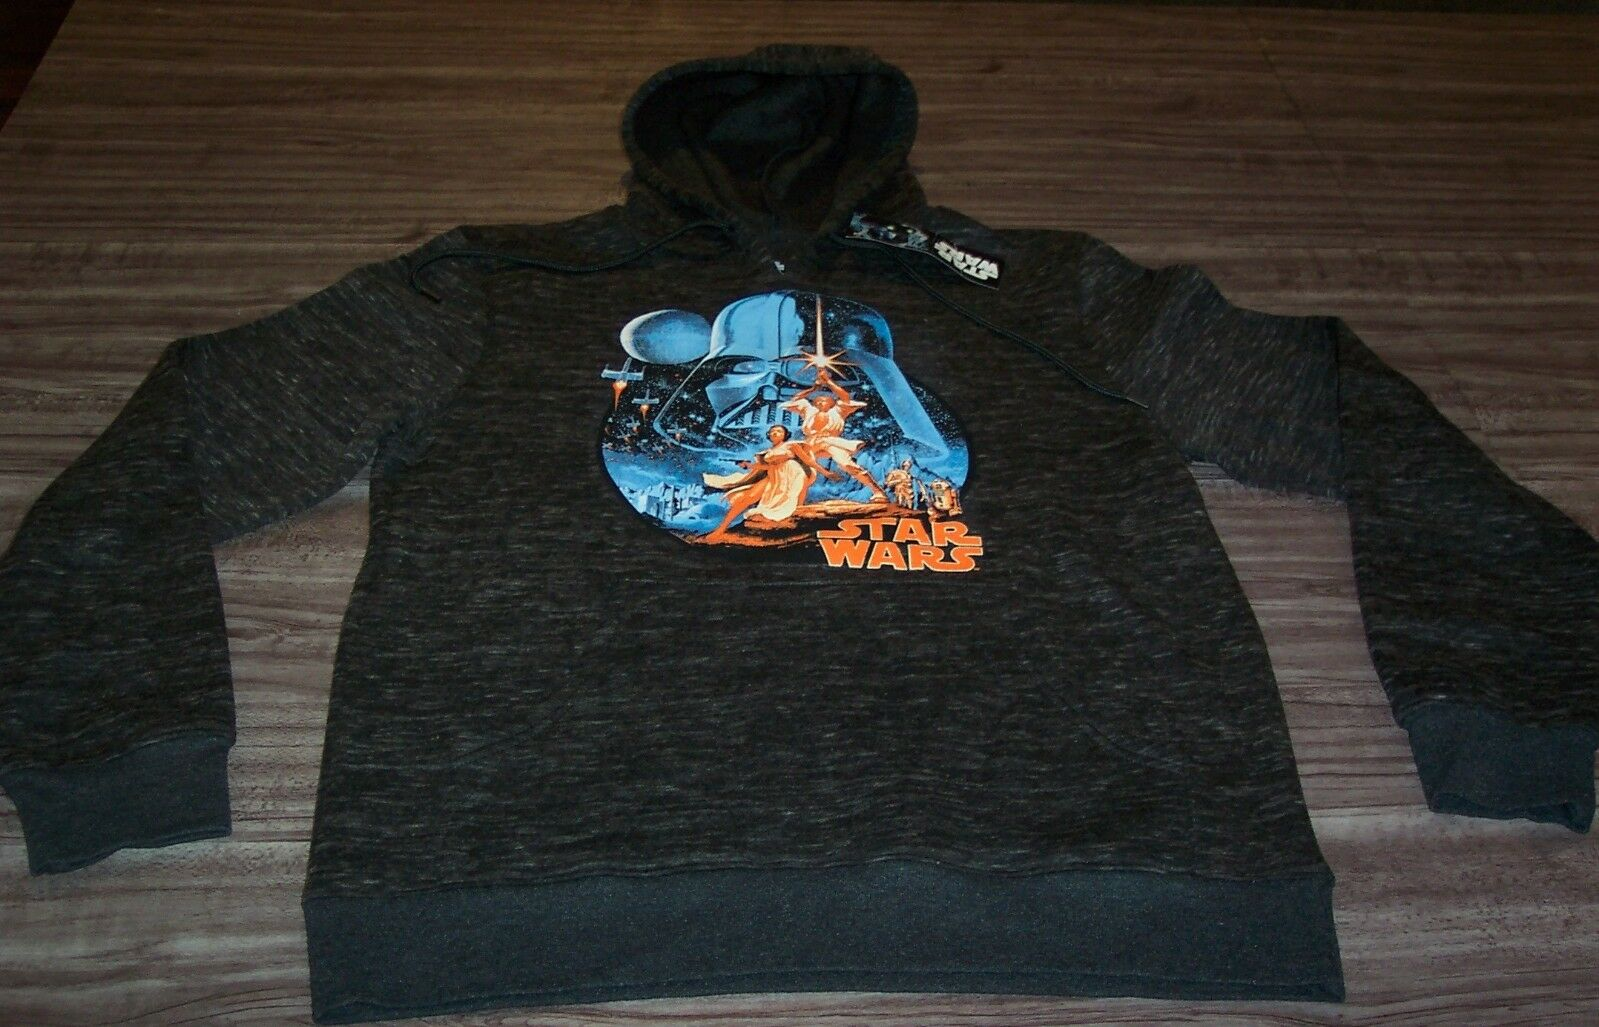 STAR WARS A NEW HOPE HOODIE HOODED Sweatshirt MEDIUM NEW w/ TAG